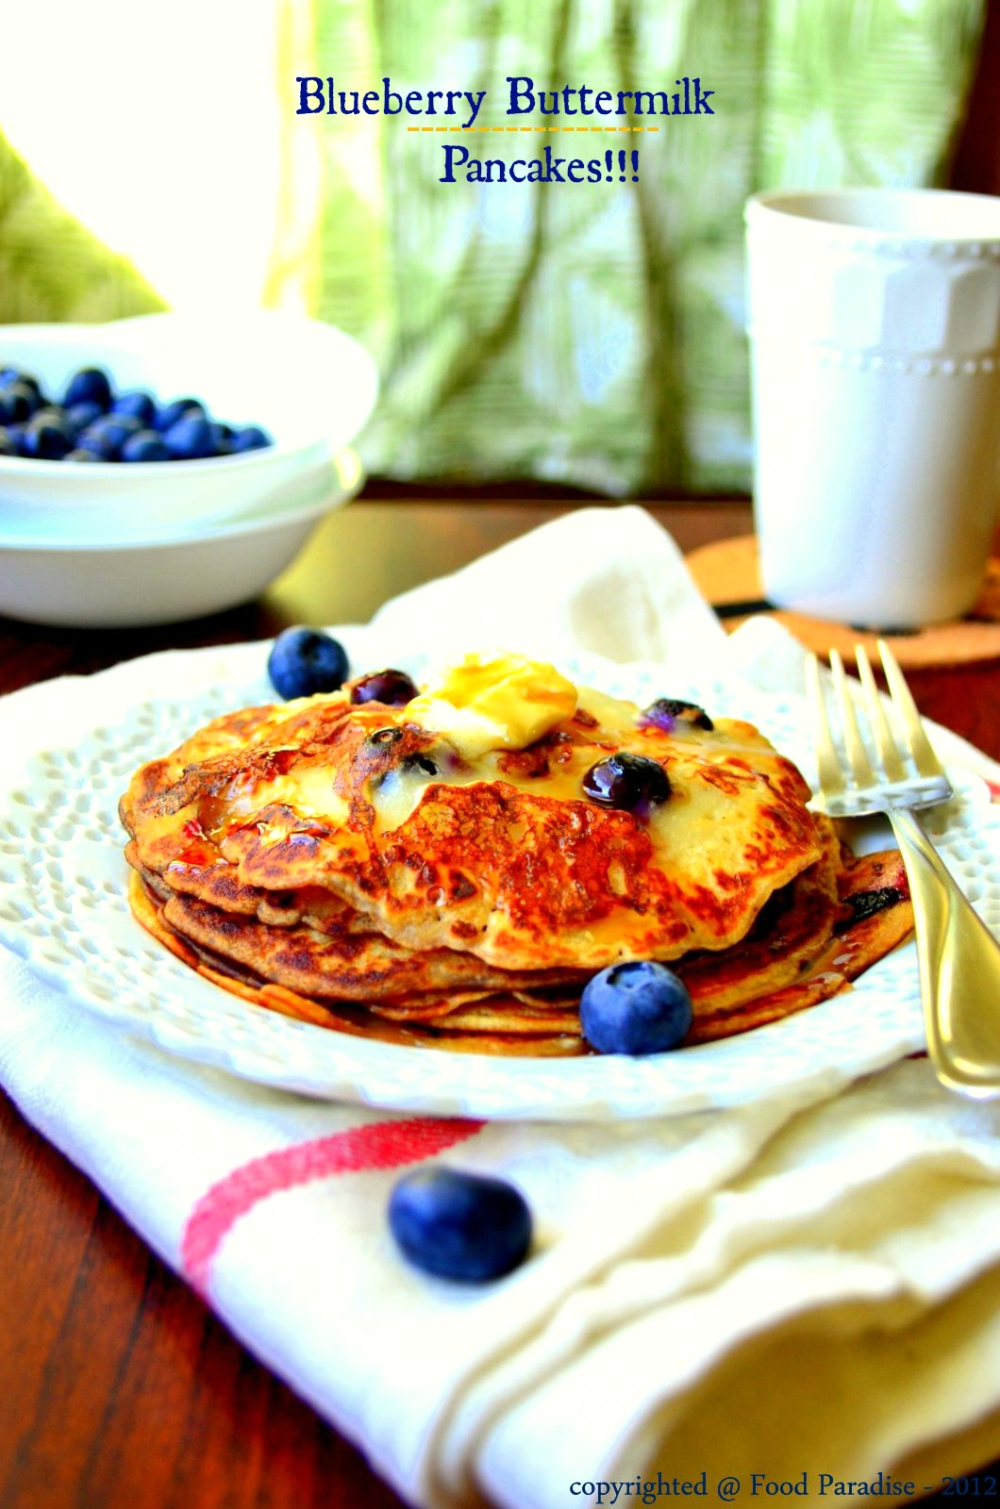 Blueberry Buttermilk Pancakes with butter & maple-syrup